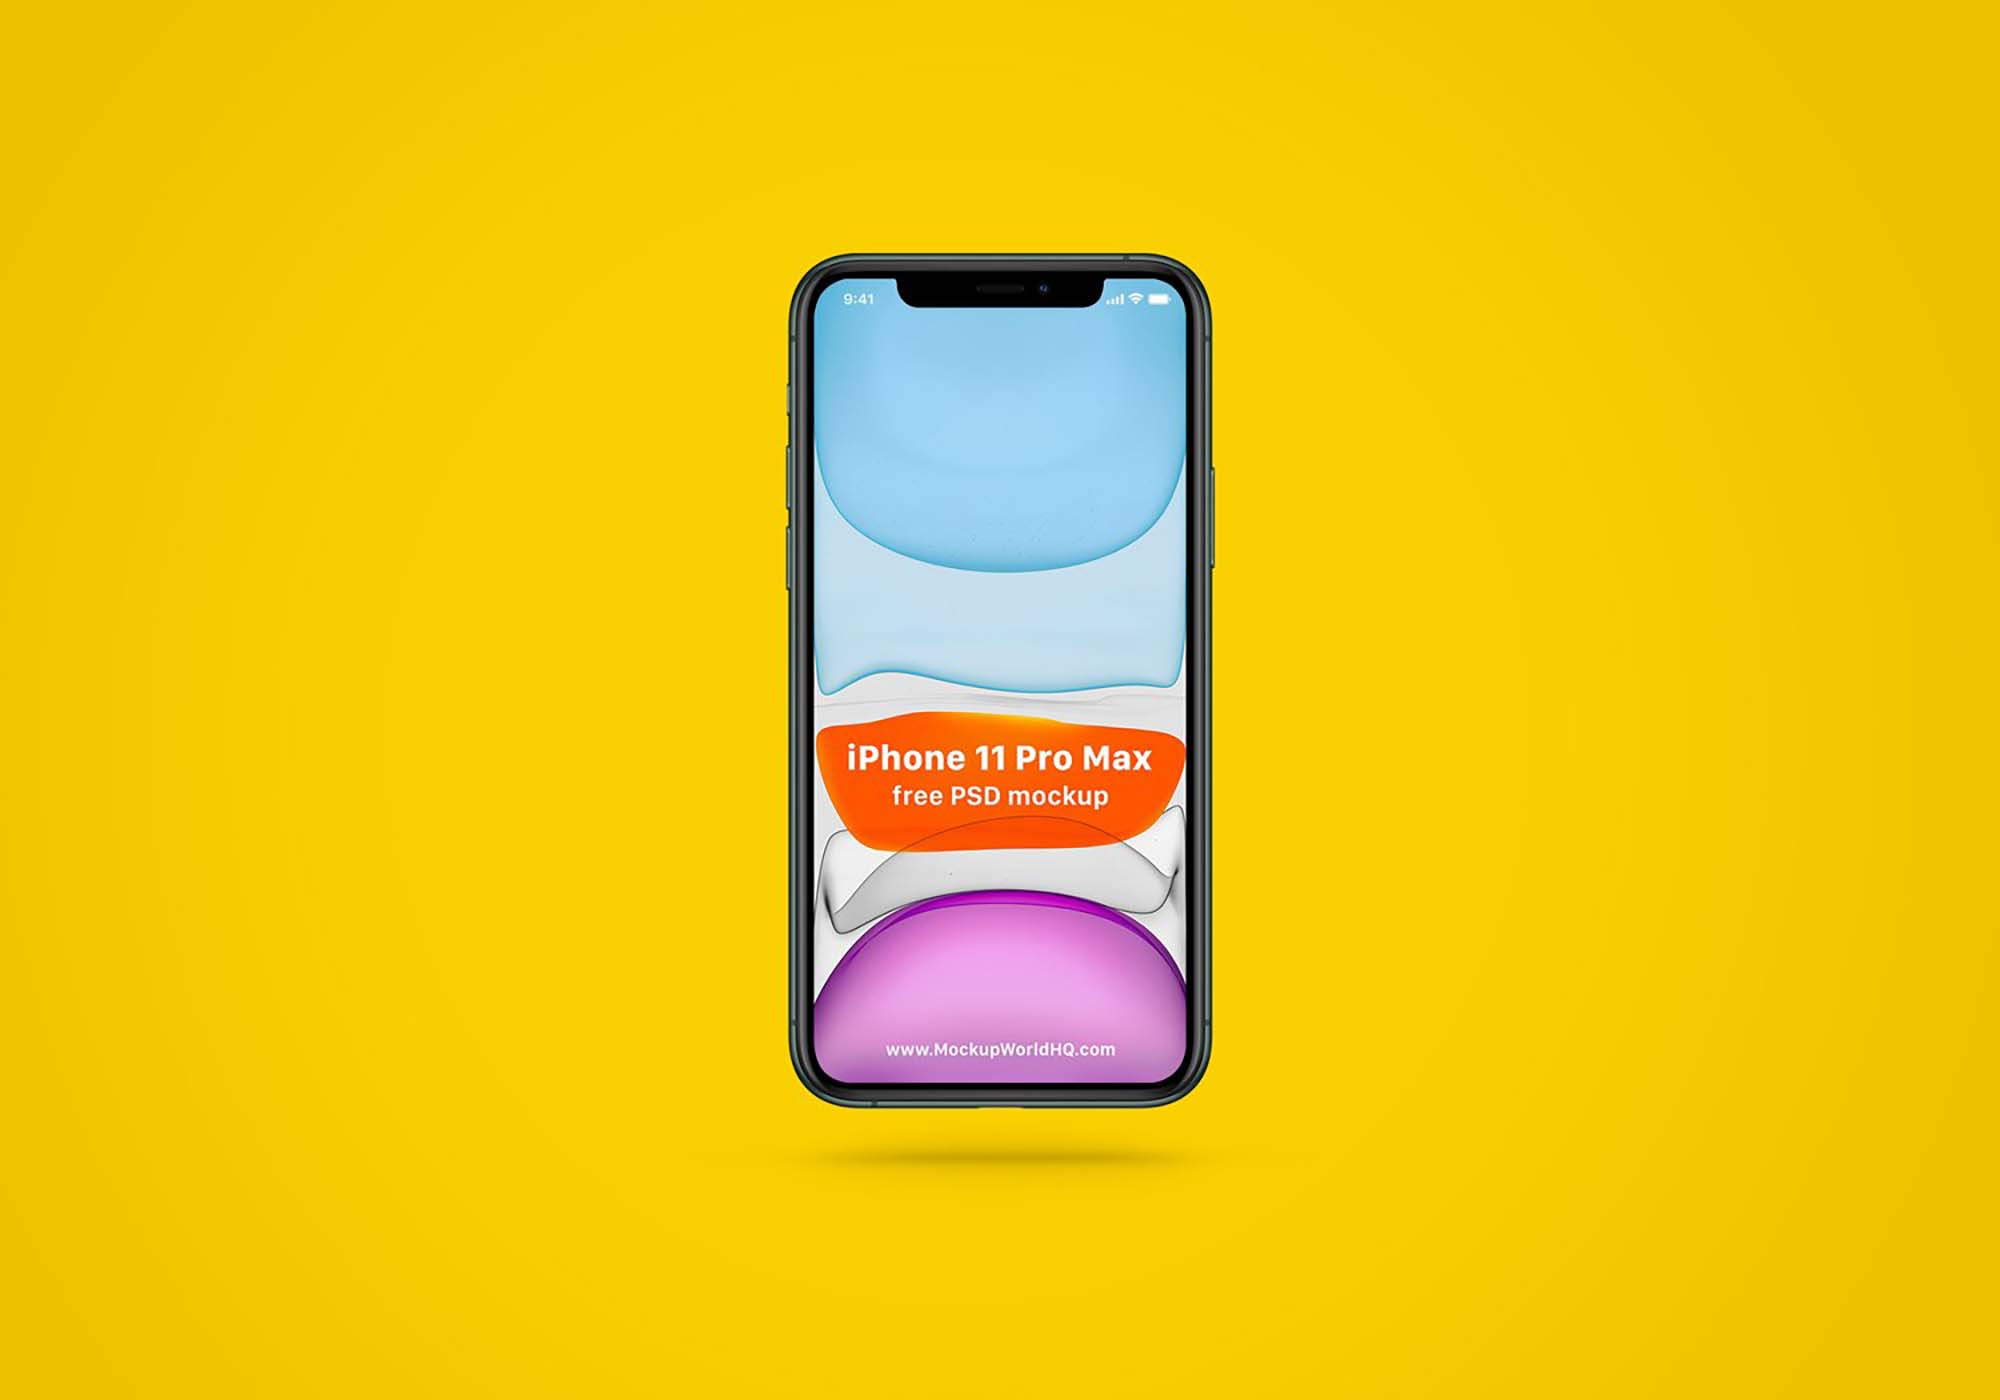 Iphone 11 Pro Max Wallpaper Hide Notch Iphone 11 Pro Max Wallpaper Template